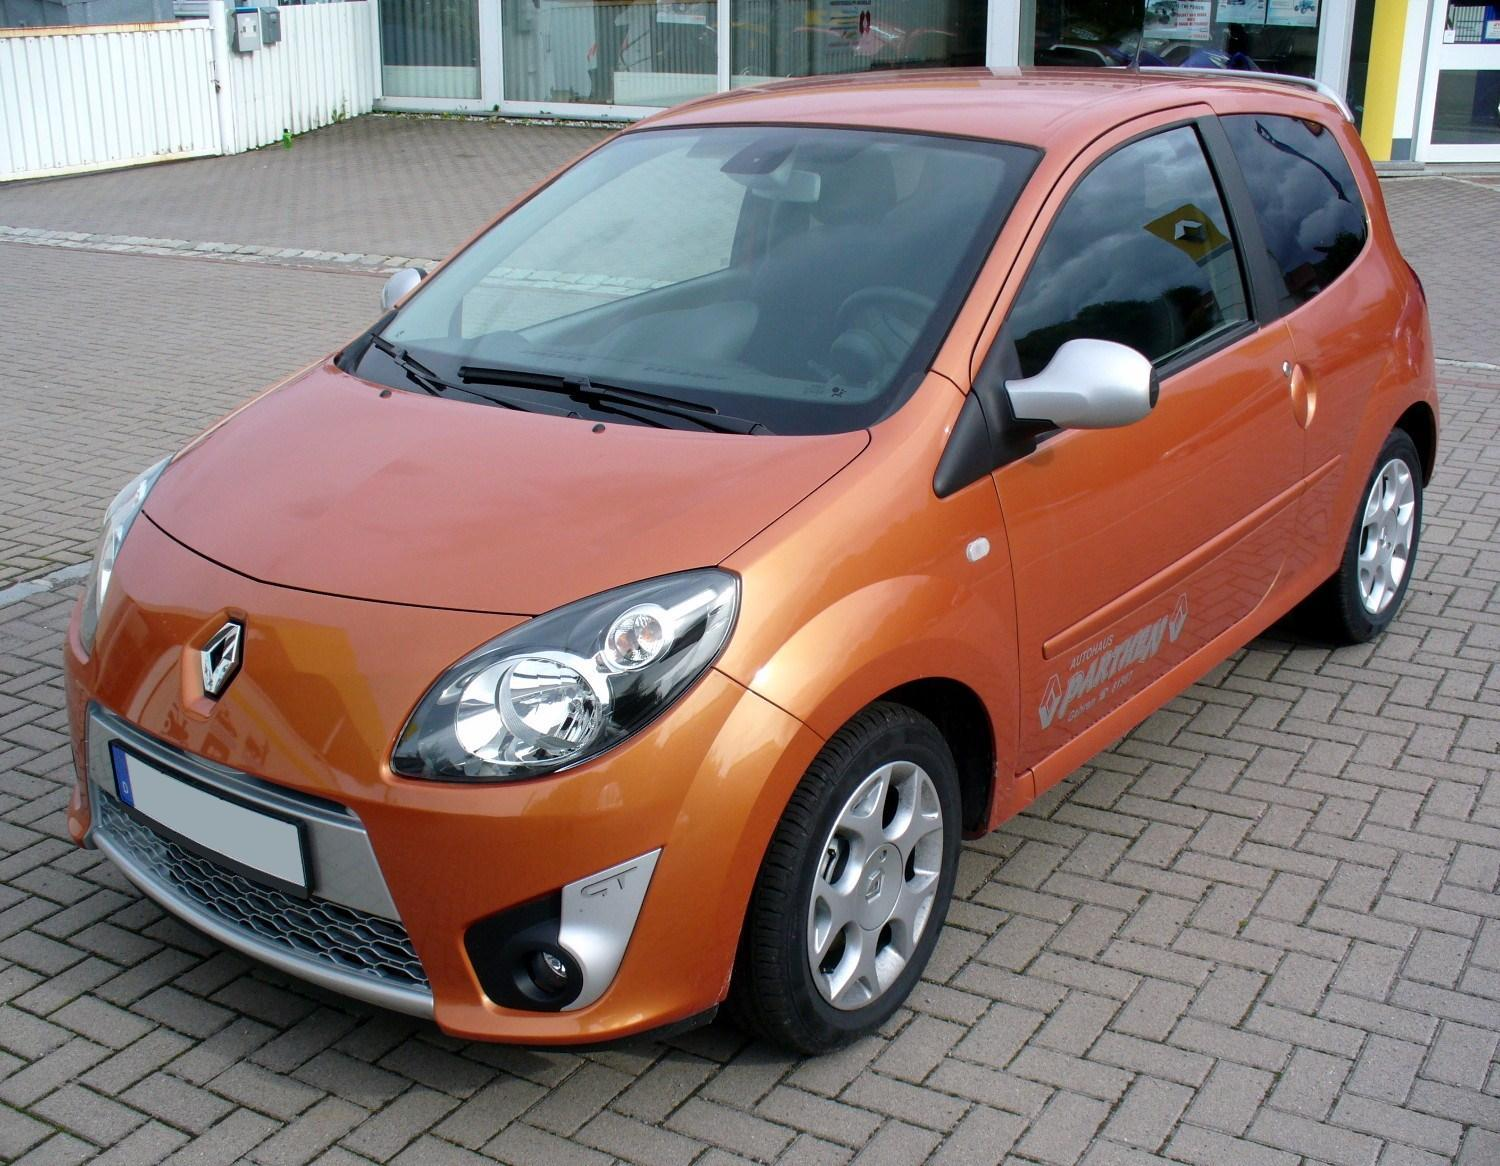 2008 renault twingo photos informations articles. Black Bedroom Furniture Sets. Home Design Ideas